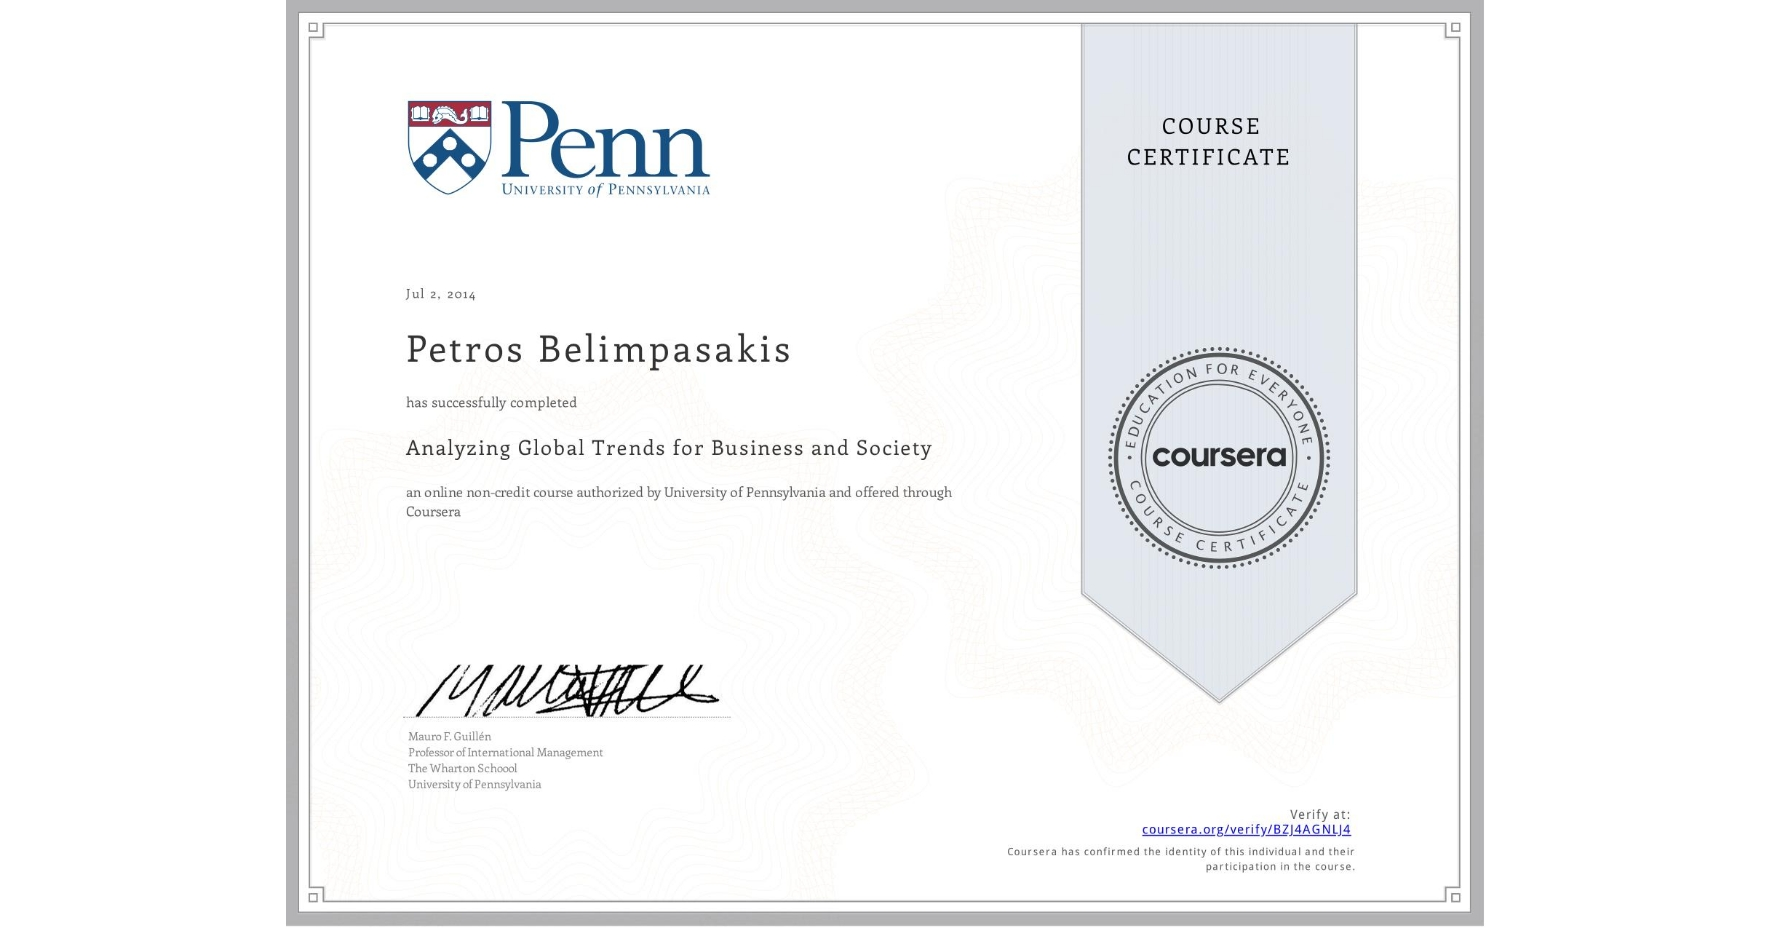 View certificate for Petros Belimpasakis, Analyzing Global Trends for Business and Society, an online non-credit course authorized by University of Pennsylvania and offered through Coursera